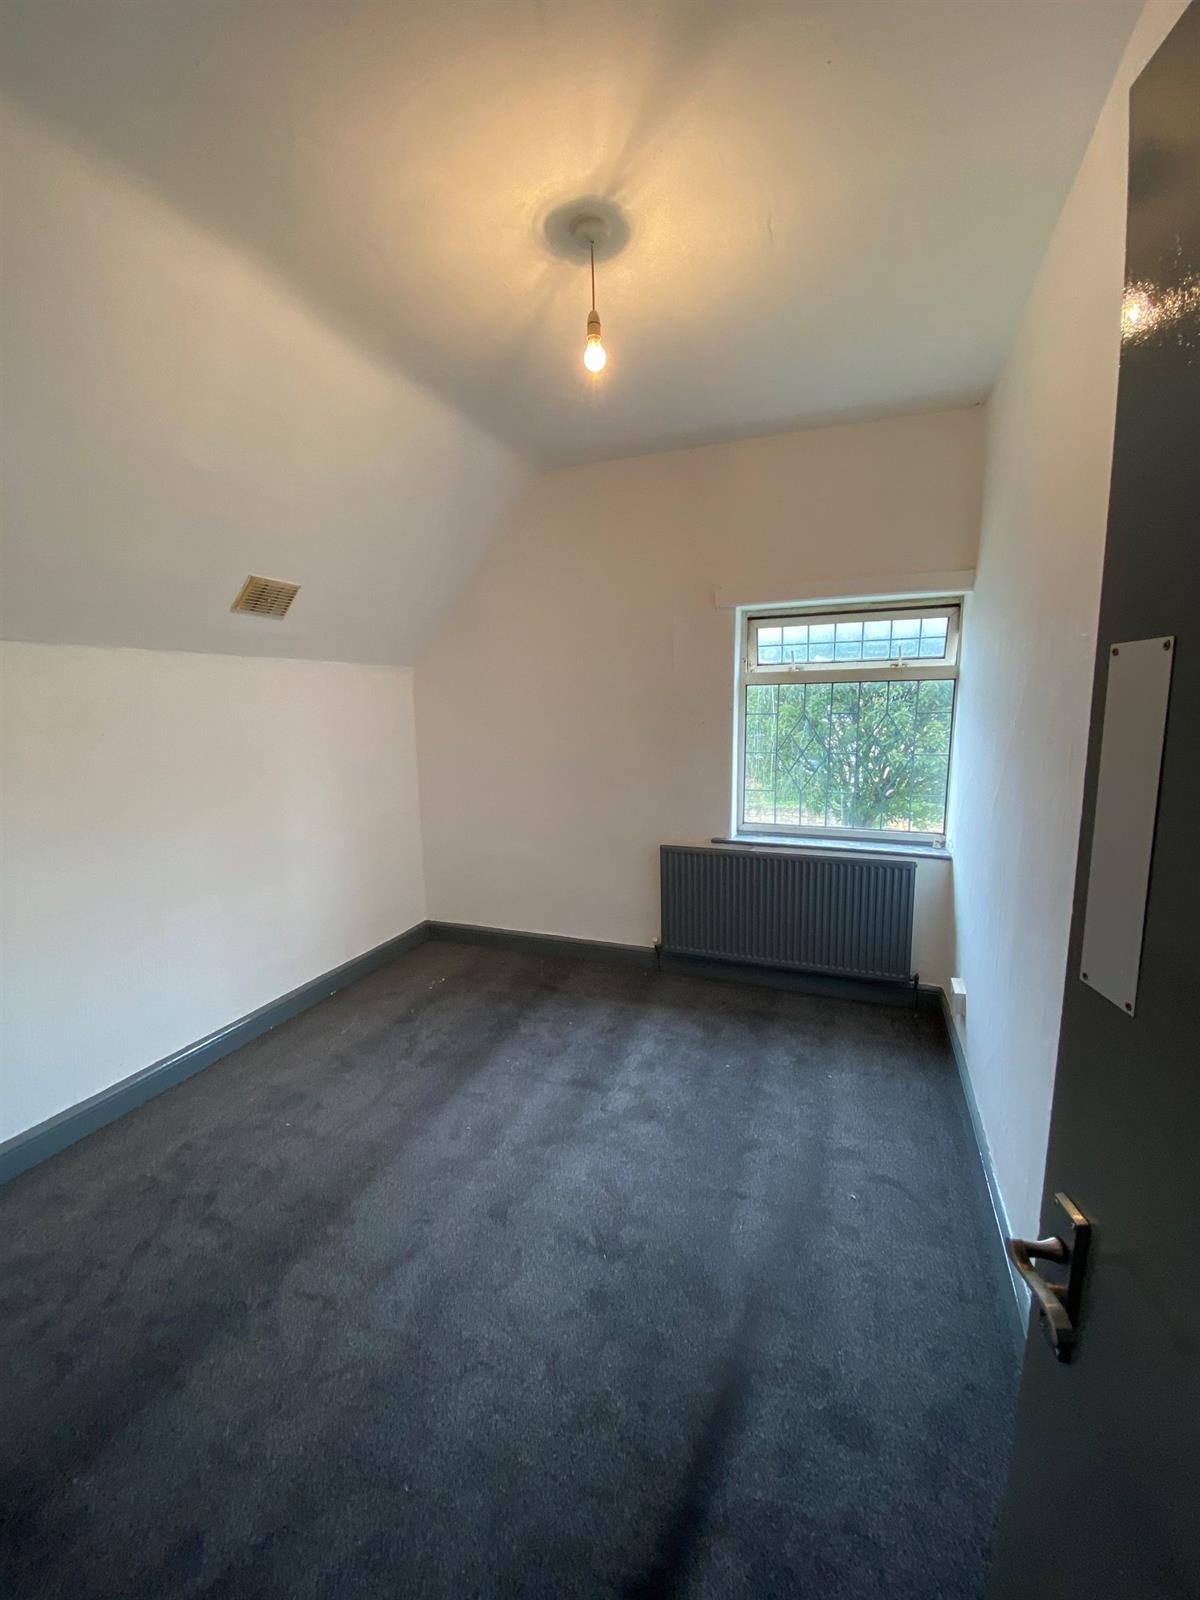 To Let - 1 bedroom Double room, Room 4, The Crescent, Woodlands, Doncaster - £75 pw